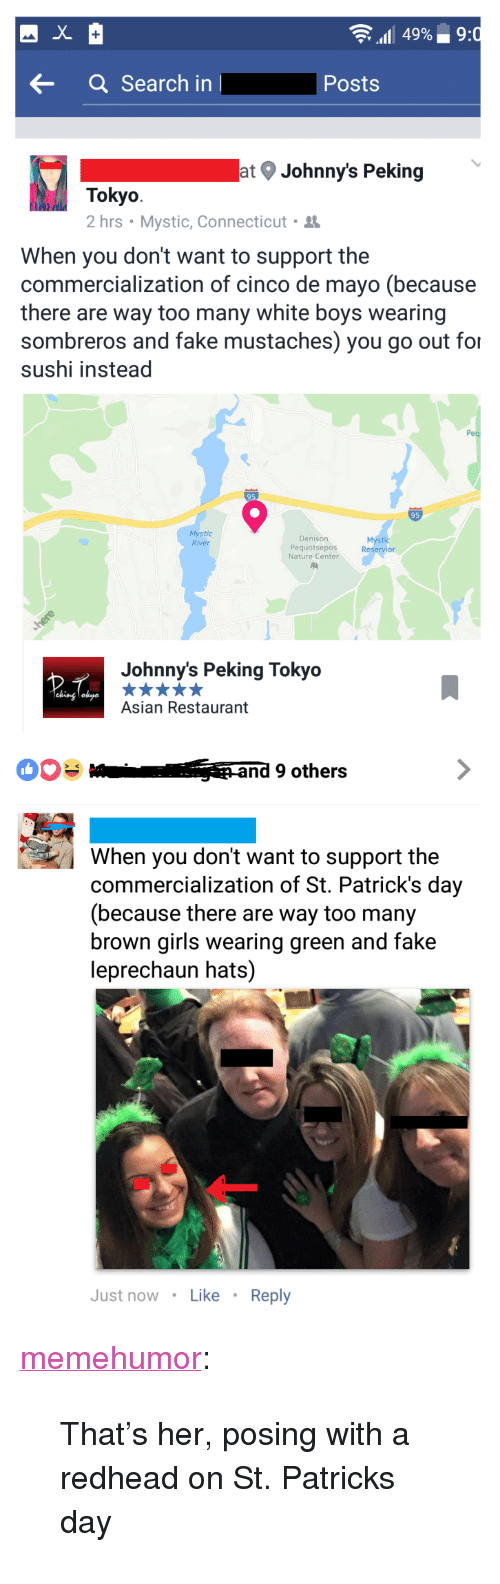 "Asian, Fake, and Girls: 49%.. 9  aSearch in  Posts  at Johnny's Peking  Tokyo  2 hrs . Mystic, Connecticut .  When you don't want to support the  commercialization of cinco de mayo (because  there are way too many white boys wearing  sombreros and fake mustaches) you go out for  sushi instead  95  Mystic  River  Denison  Pequotsepos  Nature Center  Mýstic  Reservior  Johnny's Peking Tokyo  Asian Restaurant  and 9 others  When you don't want to support the  commercialization of St. Patrick's day  (because there are way too many  brown girls wearing green and fake  leprechaun hats)  Just now Like Reply <p><a href=""http://memehumor.net/post/160501458988/thats-her-posing-with-a-redhead-on-st-patricks"" class=""tumblr_blog"">memehumor</a>:</p>  <blockquote><p>That's her, posing with a redhead on St. Patricks day</p></blockquote>"